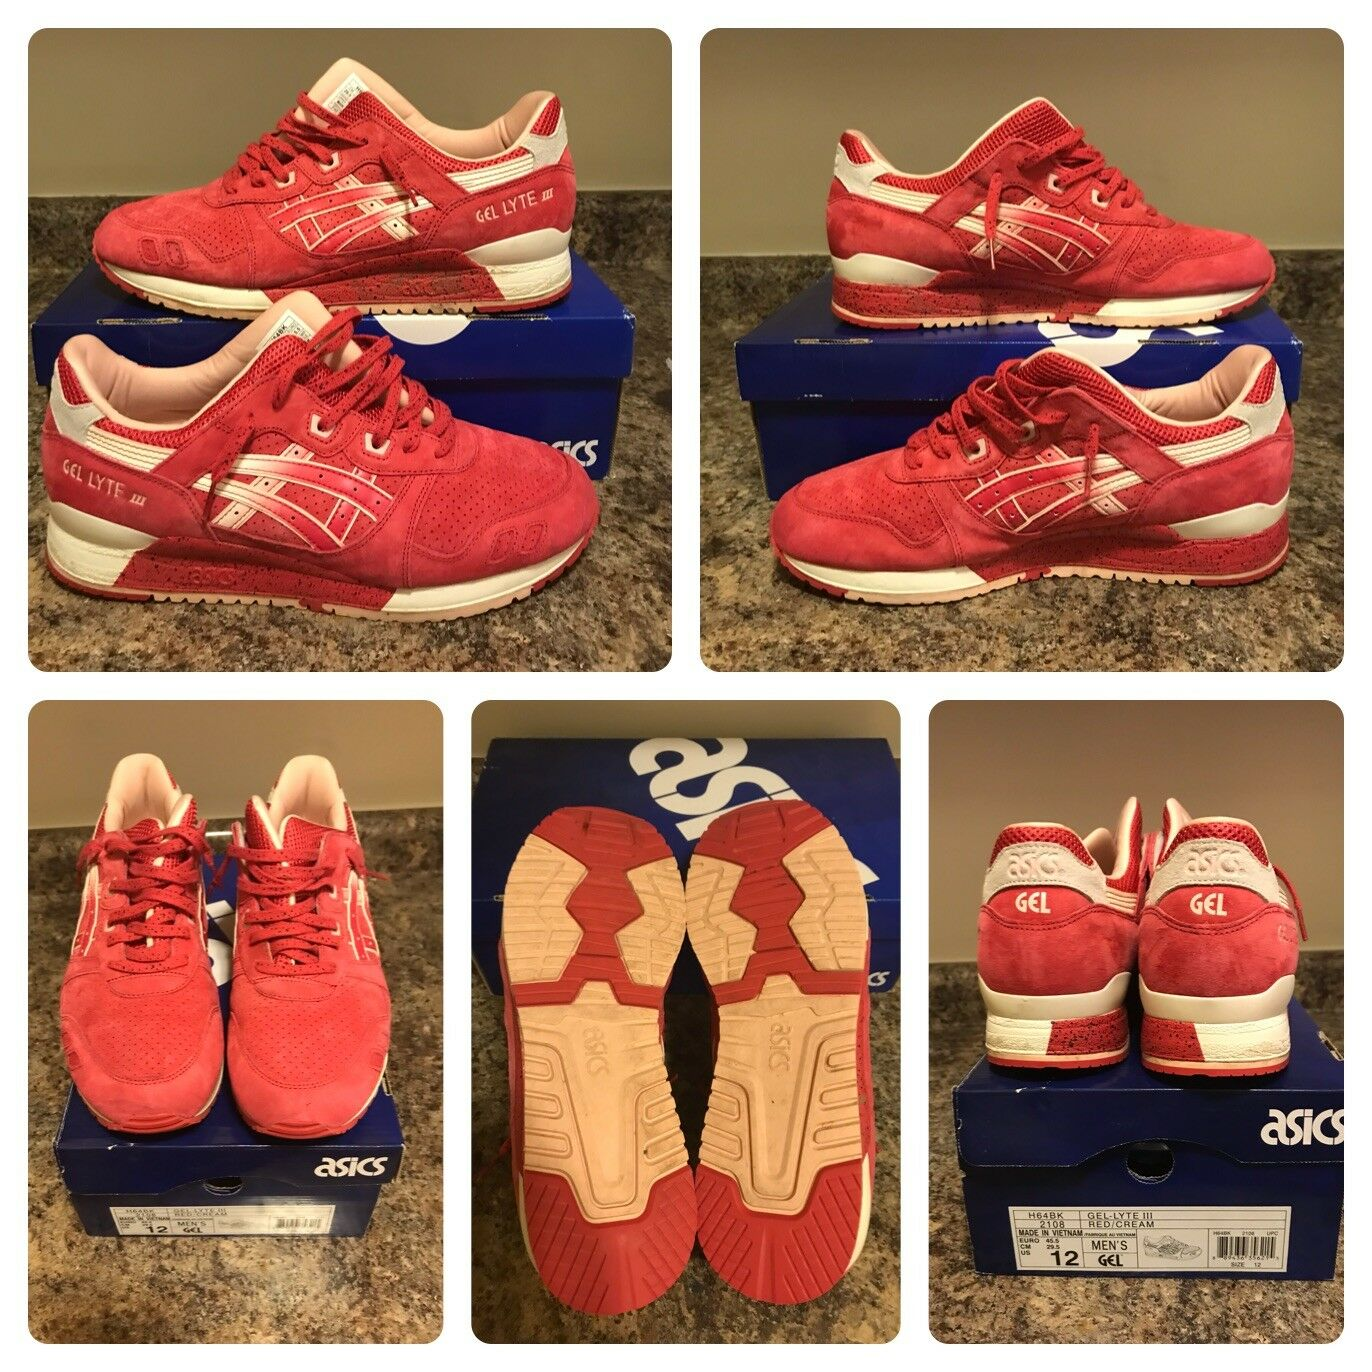 Gel Lyte 3 Red Cream Size 12